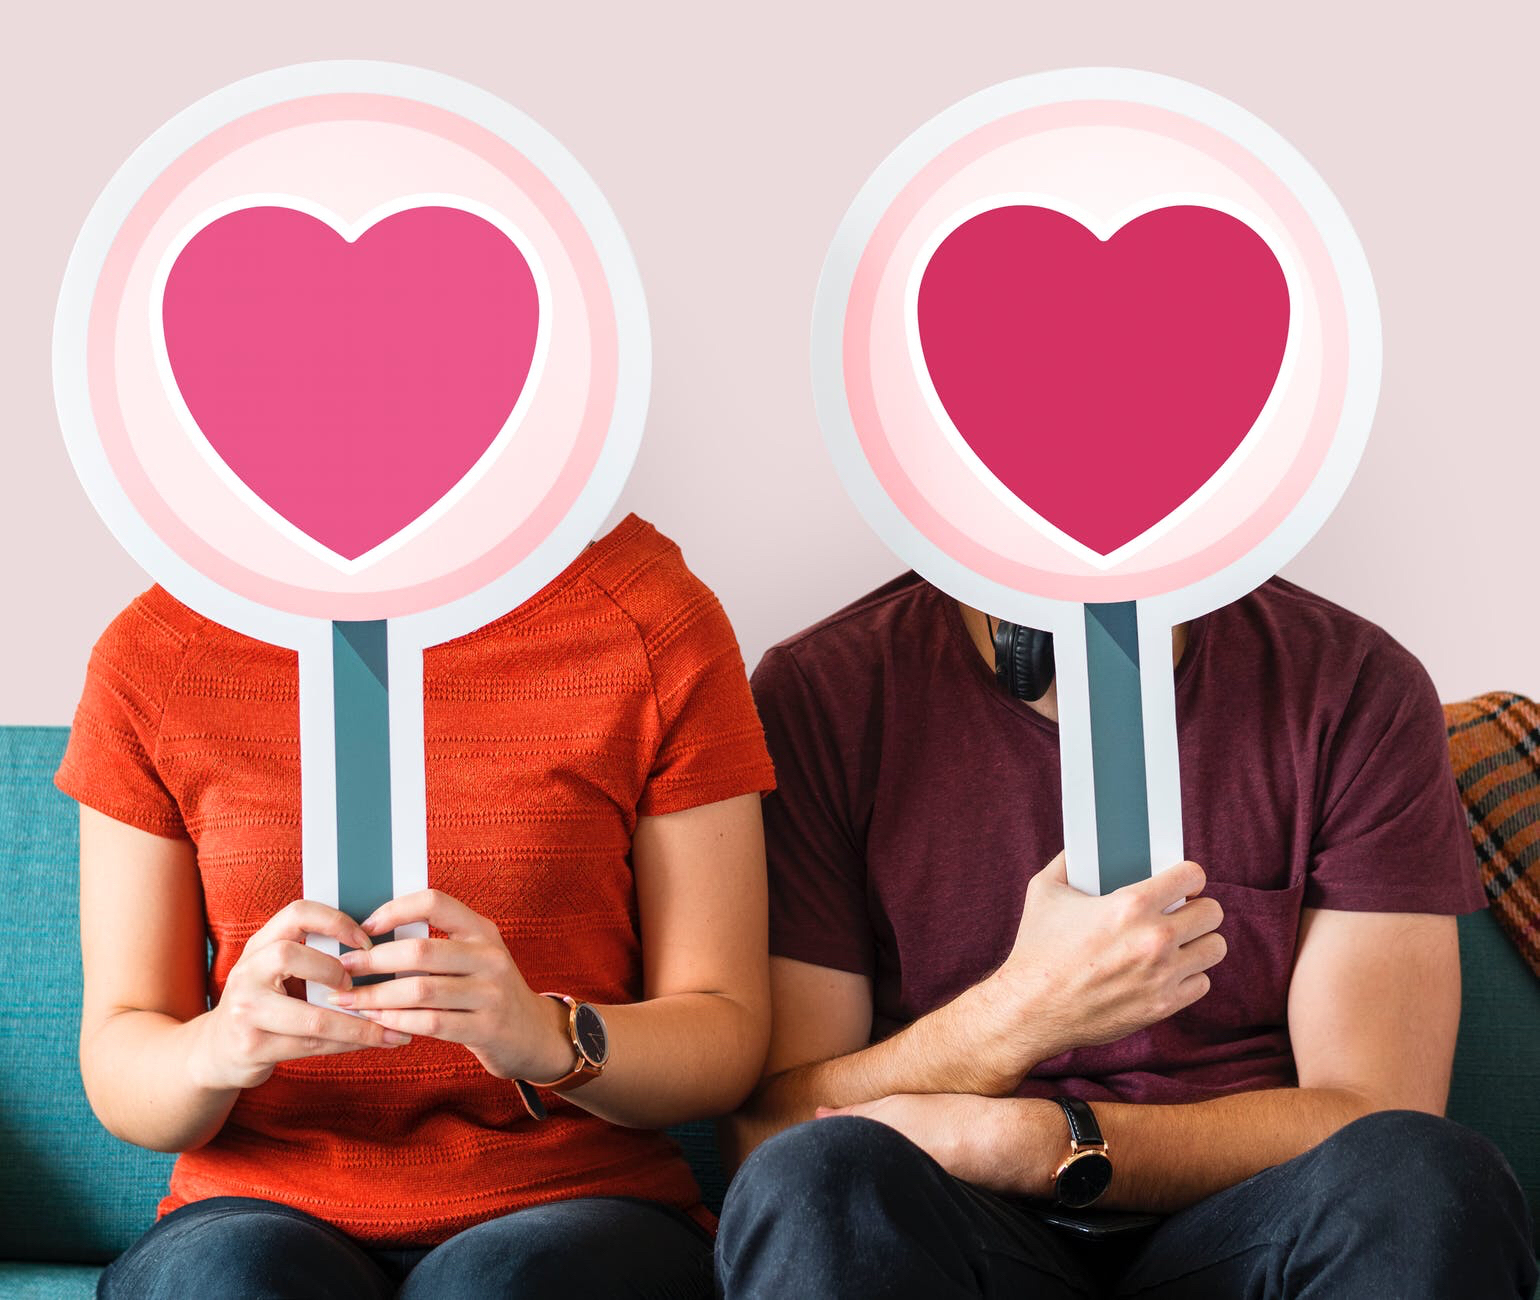 Man and woman holding heart signs over their faces